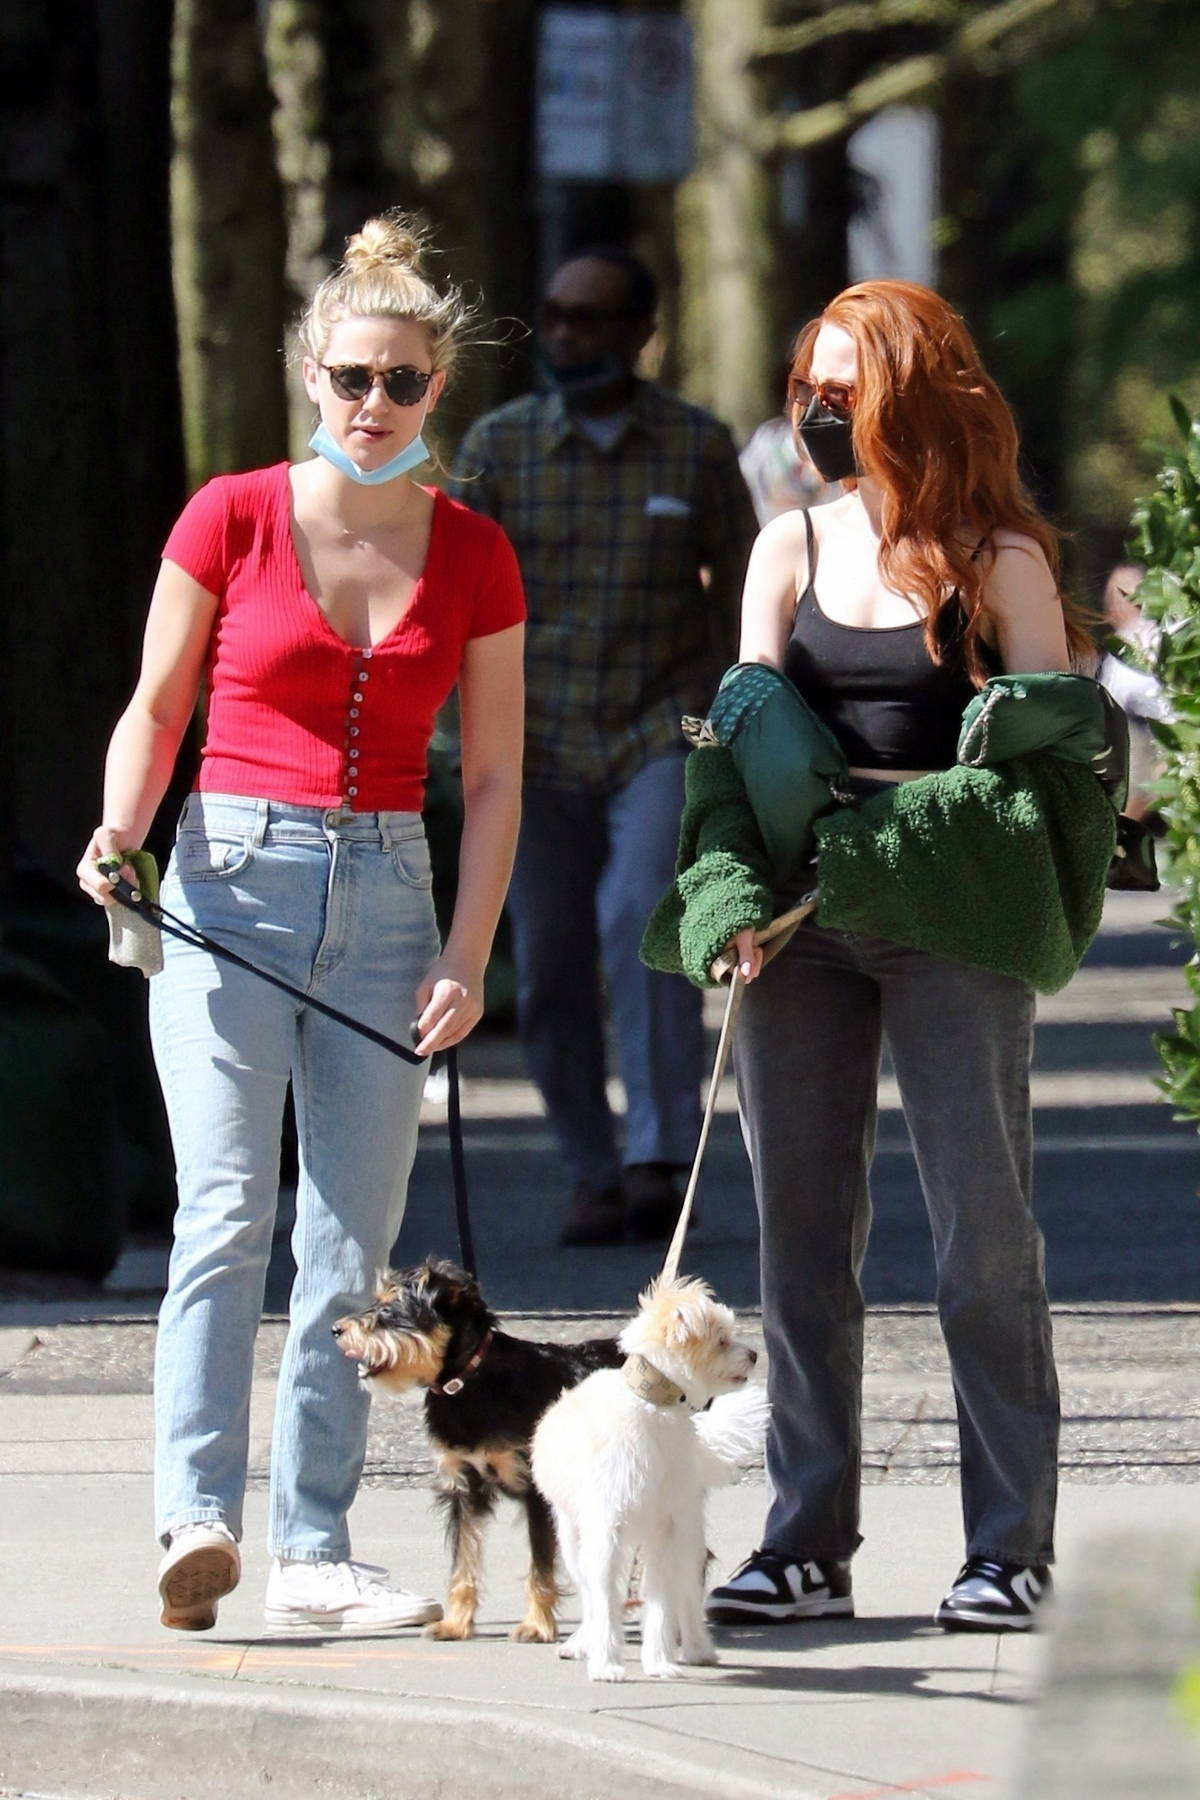 Lili Reinhart and Madelaine Petsch step out to walk their dogs in Vancouver, Canada